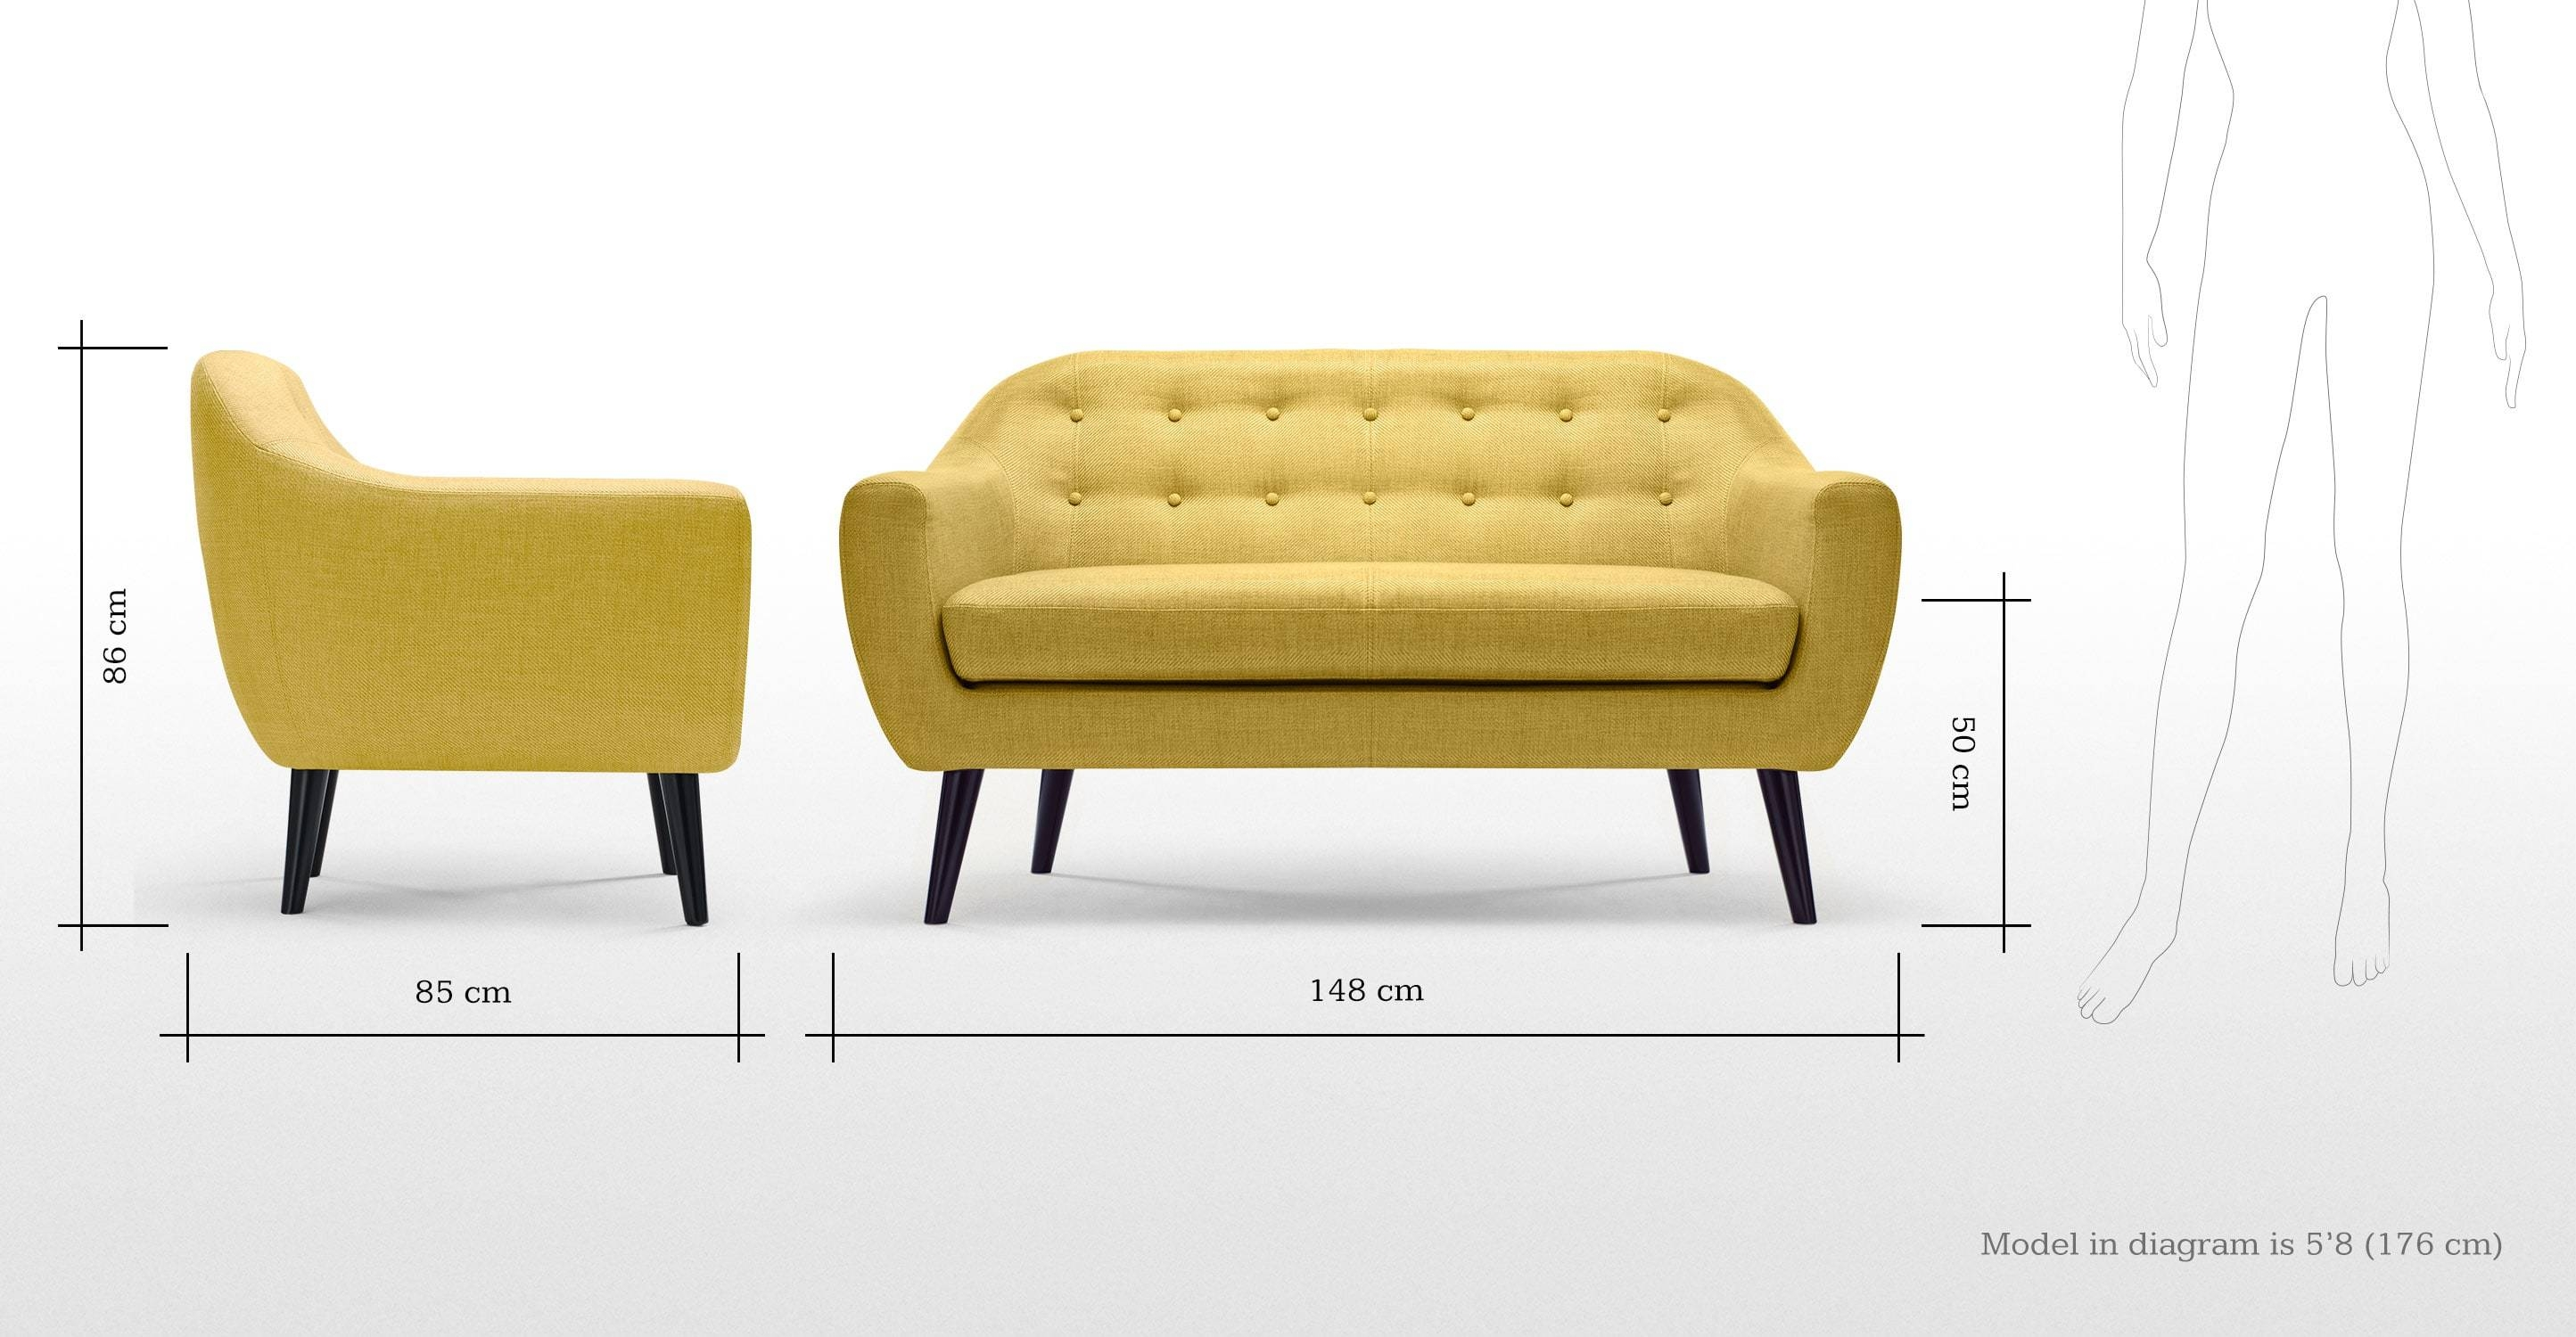 Ritchie 2 Seater Sofa, Ochre Yellow | Made regarding Small 2 Seater Sofas (Image 9 of 30)